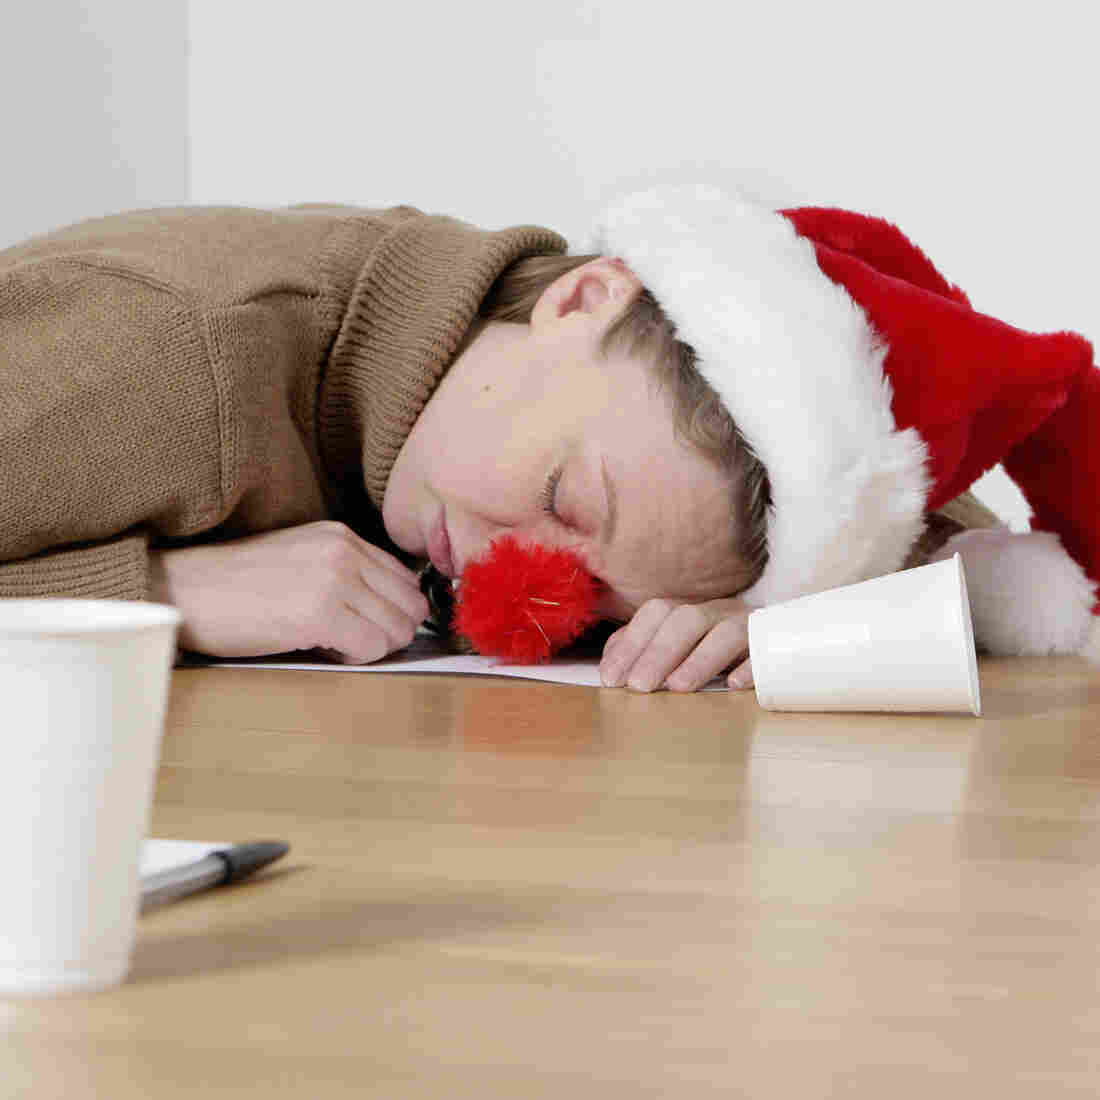 Too much partying at the office holiday bash can lead to lawsuits, firings or just plain awkwardness.